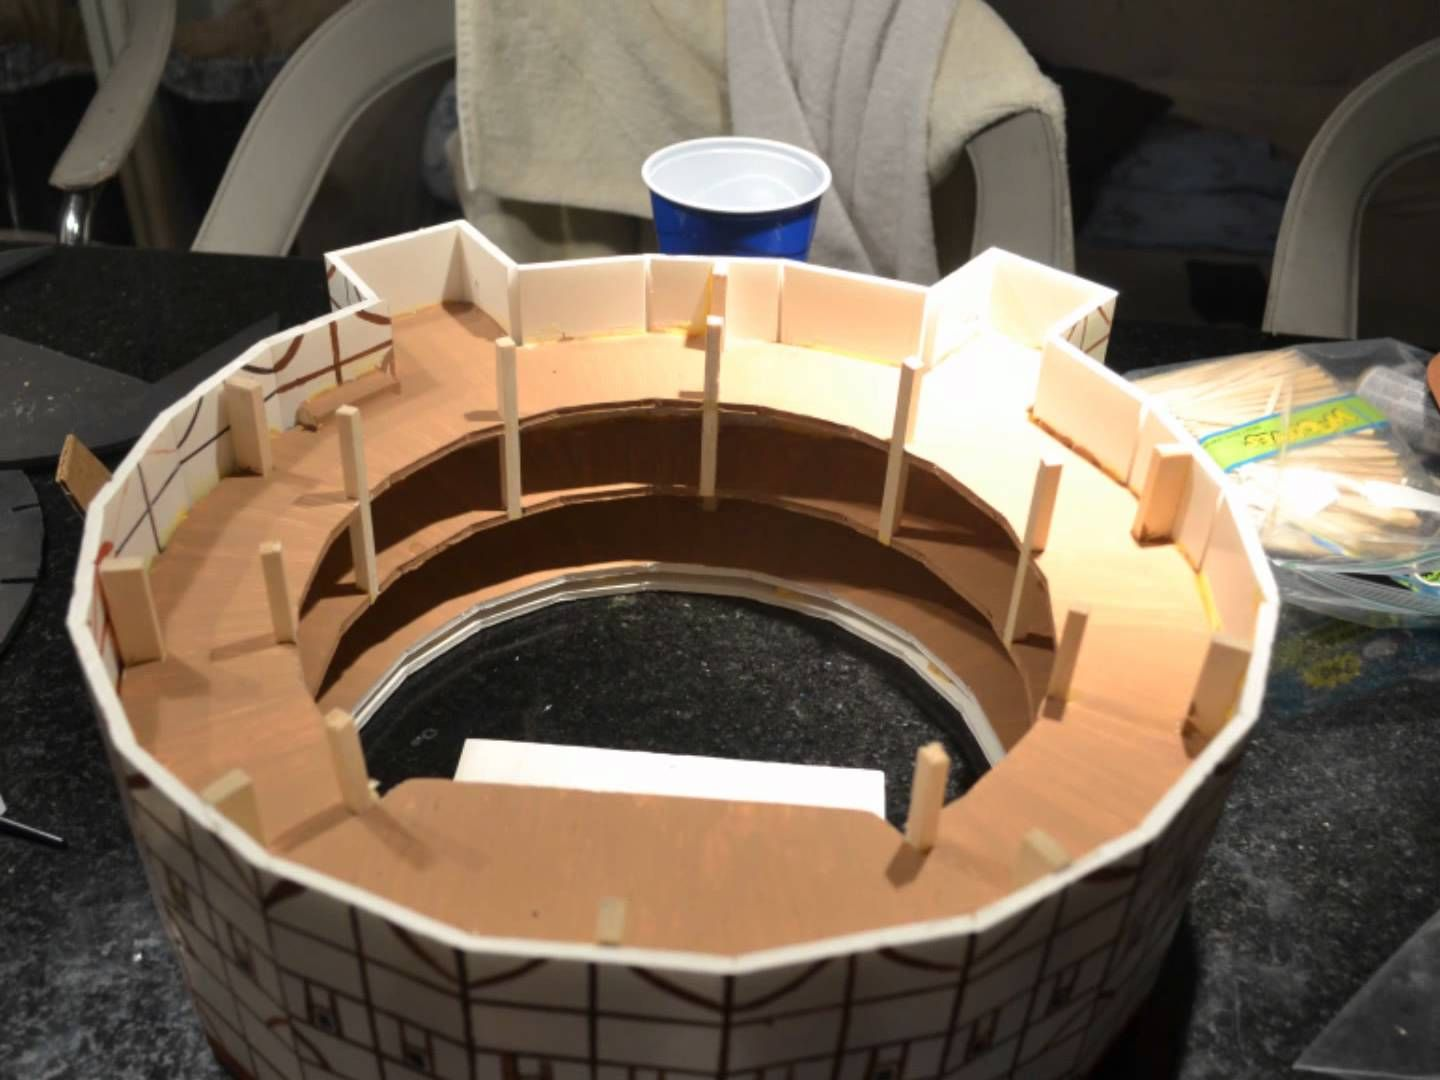 The Globe Theater Model